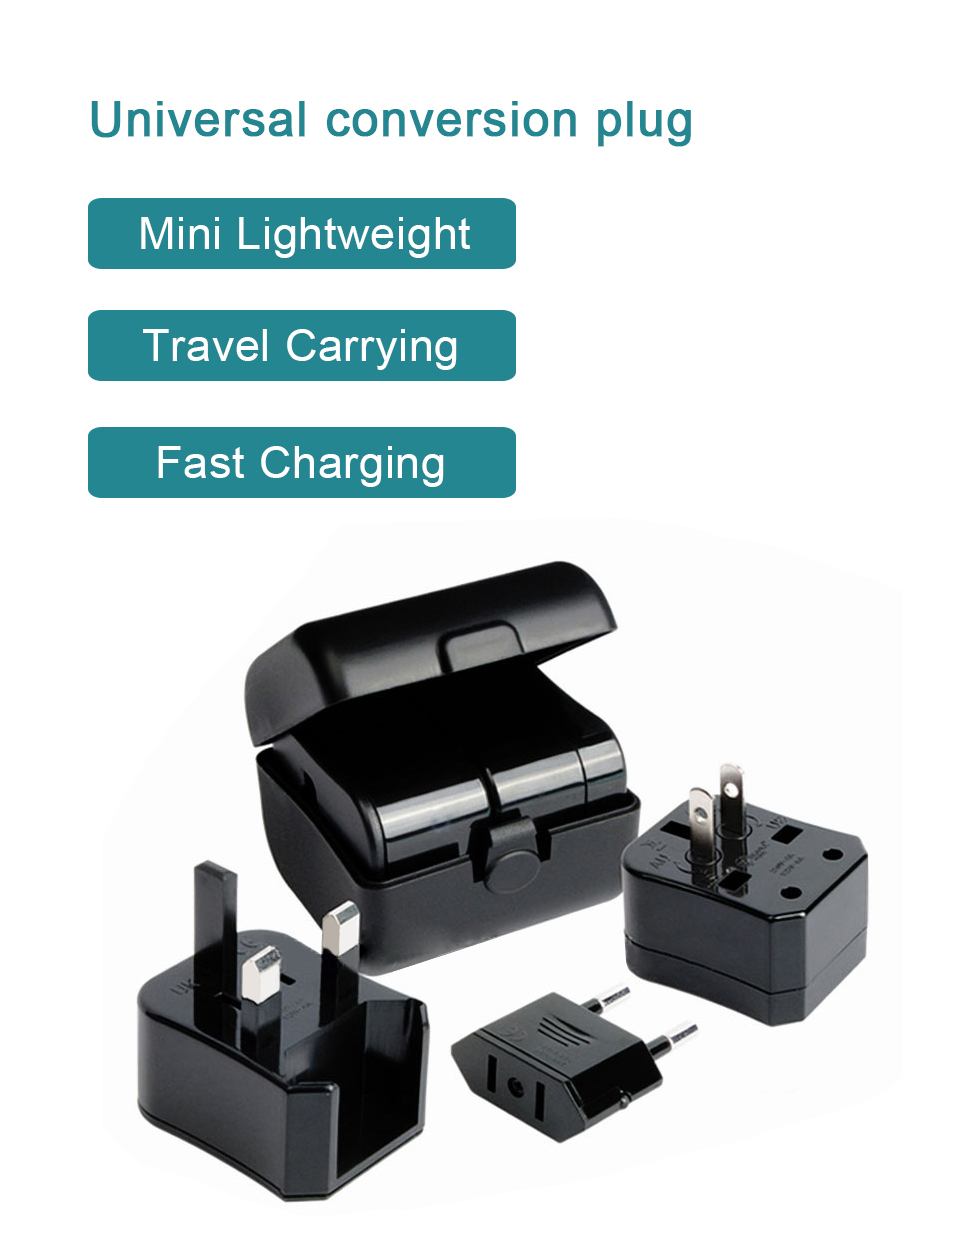 Three-in-one Global Travel Conversion 3 Sockets Plugs Universal Adapter Travel Abroad Converter Household Plugs USAUEUUK (1)